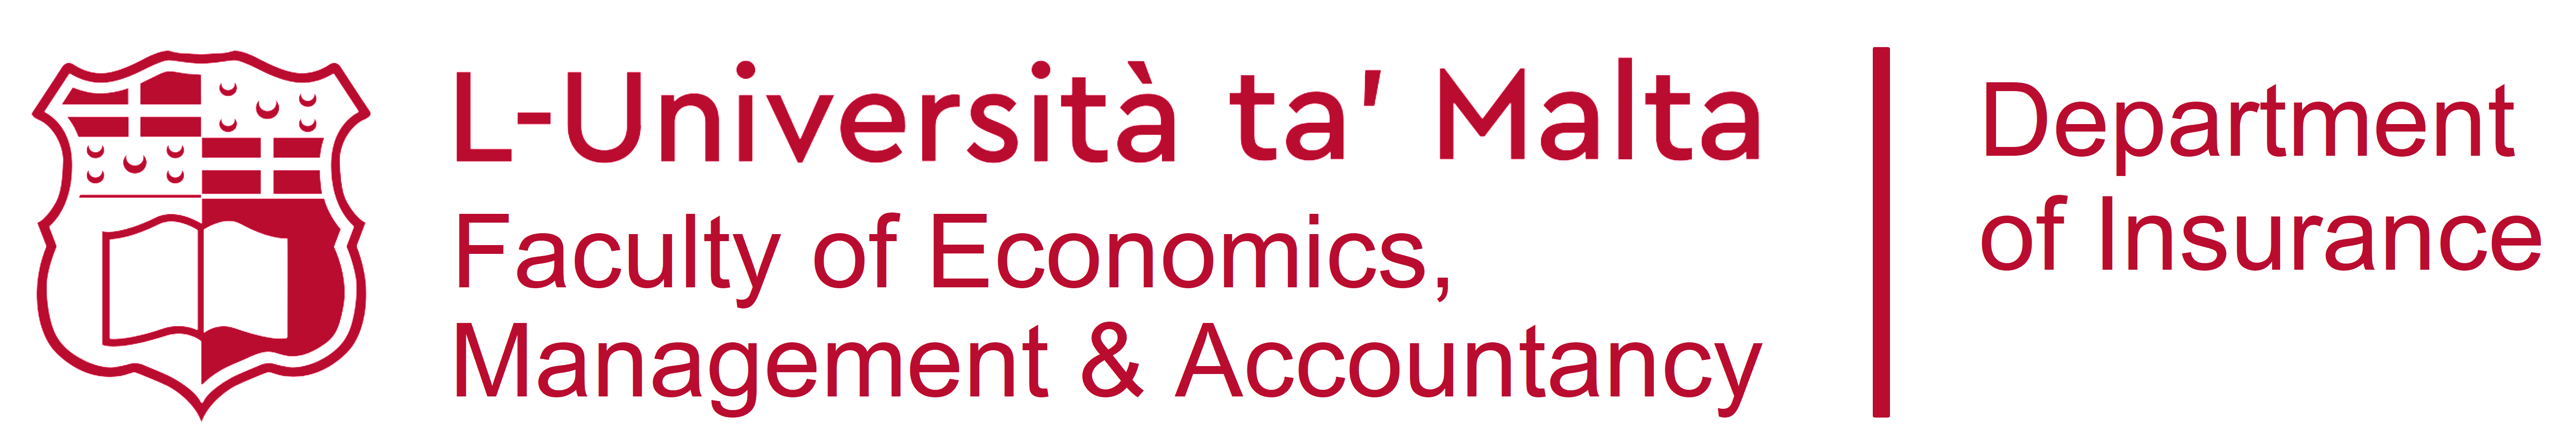 University_of_Malta_logo